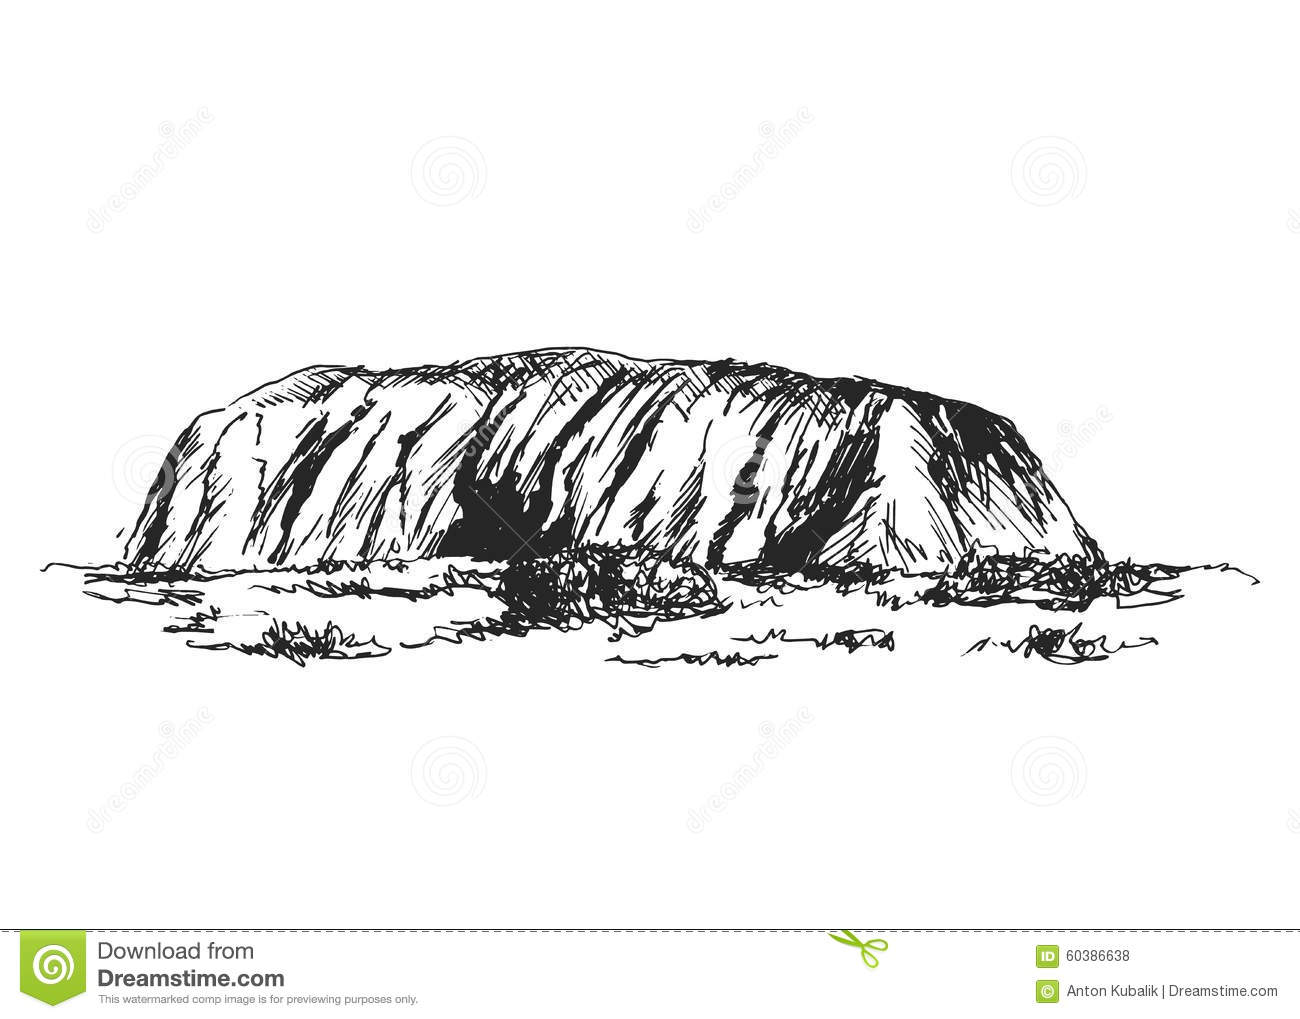 Ayers Rock clipart #15, Download drawings